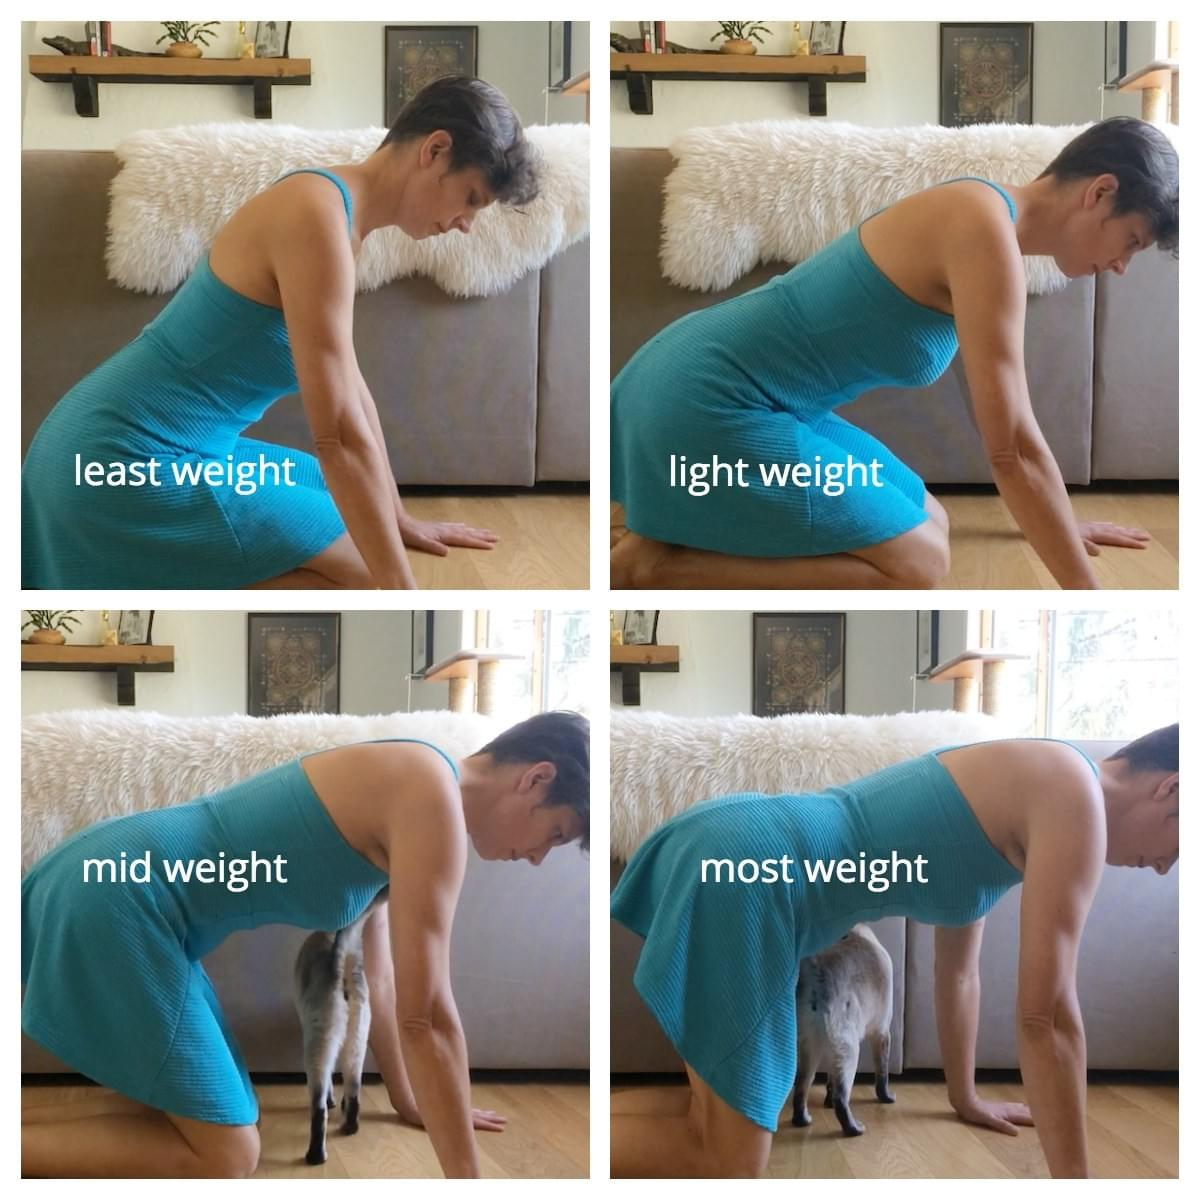 On all fours showing a progression of weight into the wrists starting with the bum resting back on the feet and the hands close to the knees and gradually adding more weight into the wrists by moving the hands further from the knees and lifting the hips off the feet till they are directly over the knees.